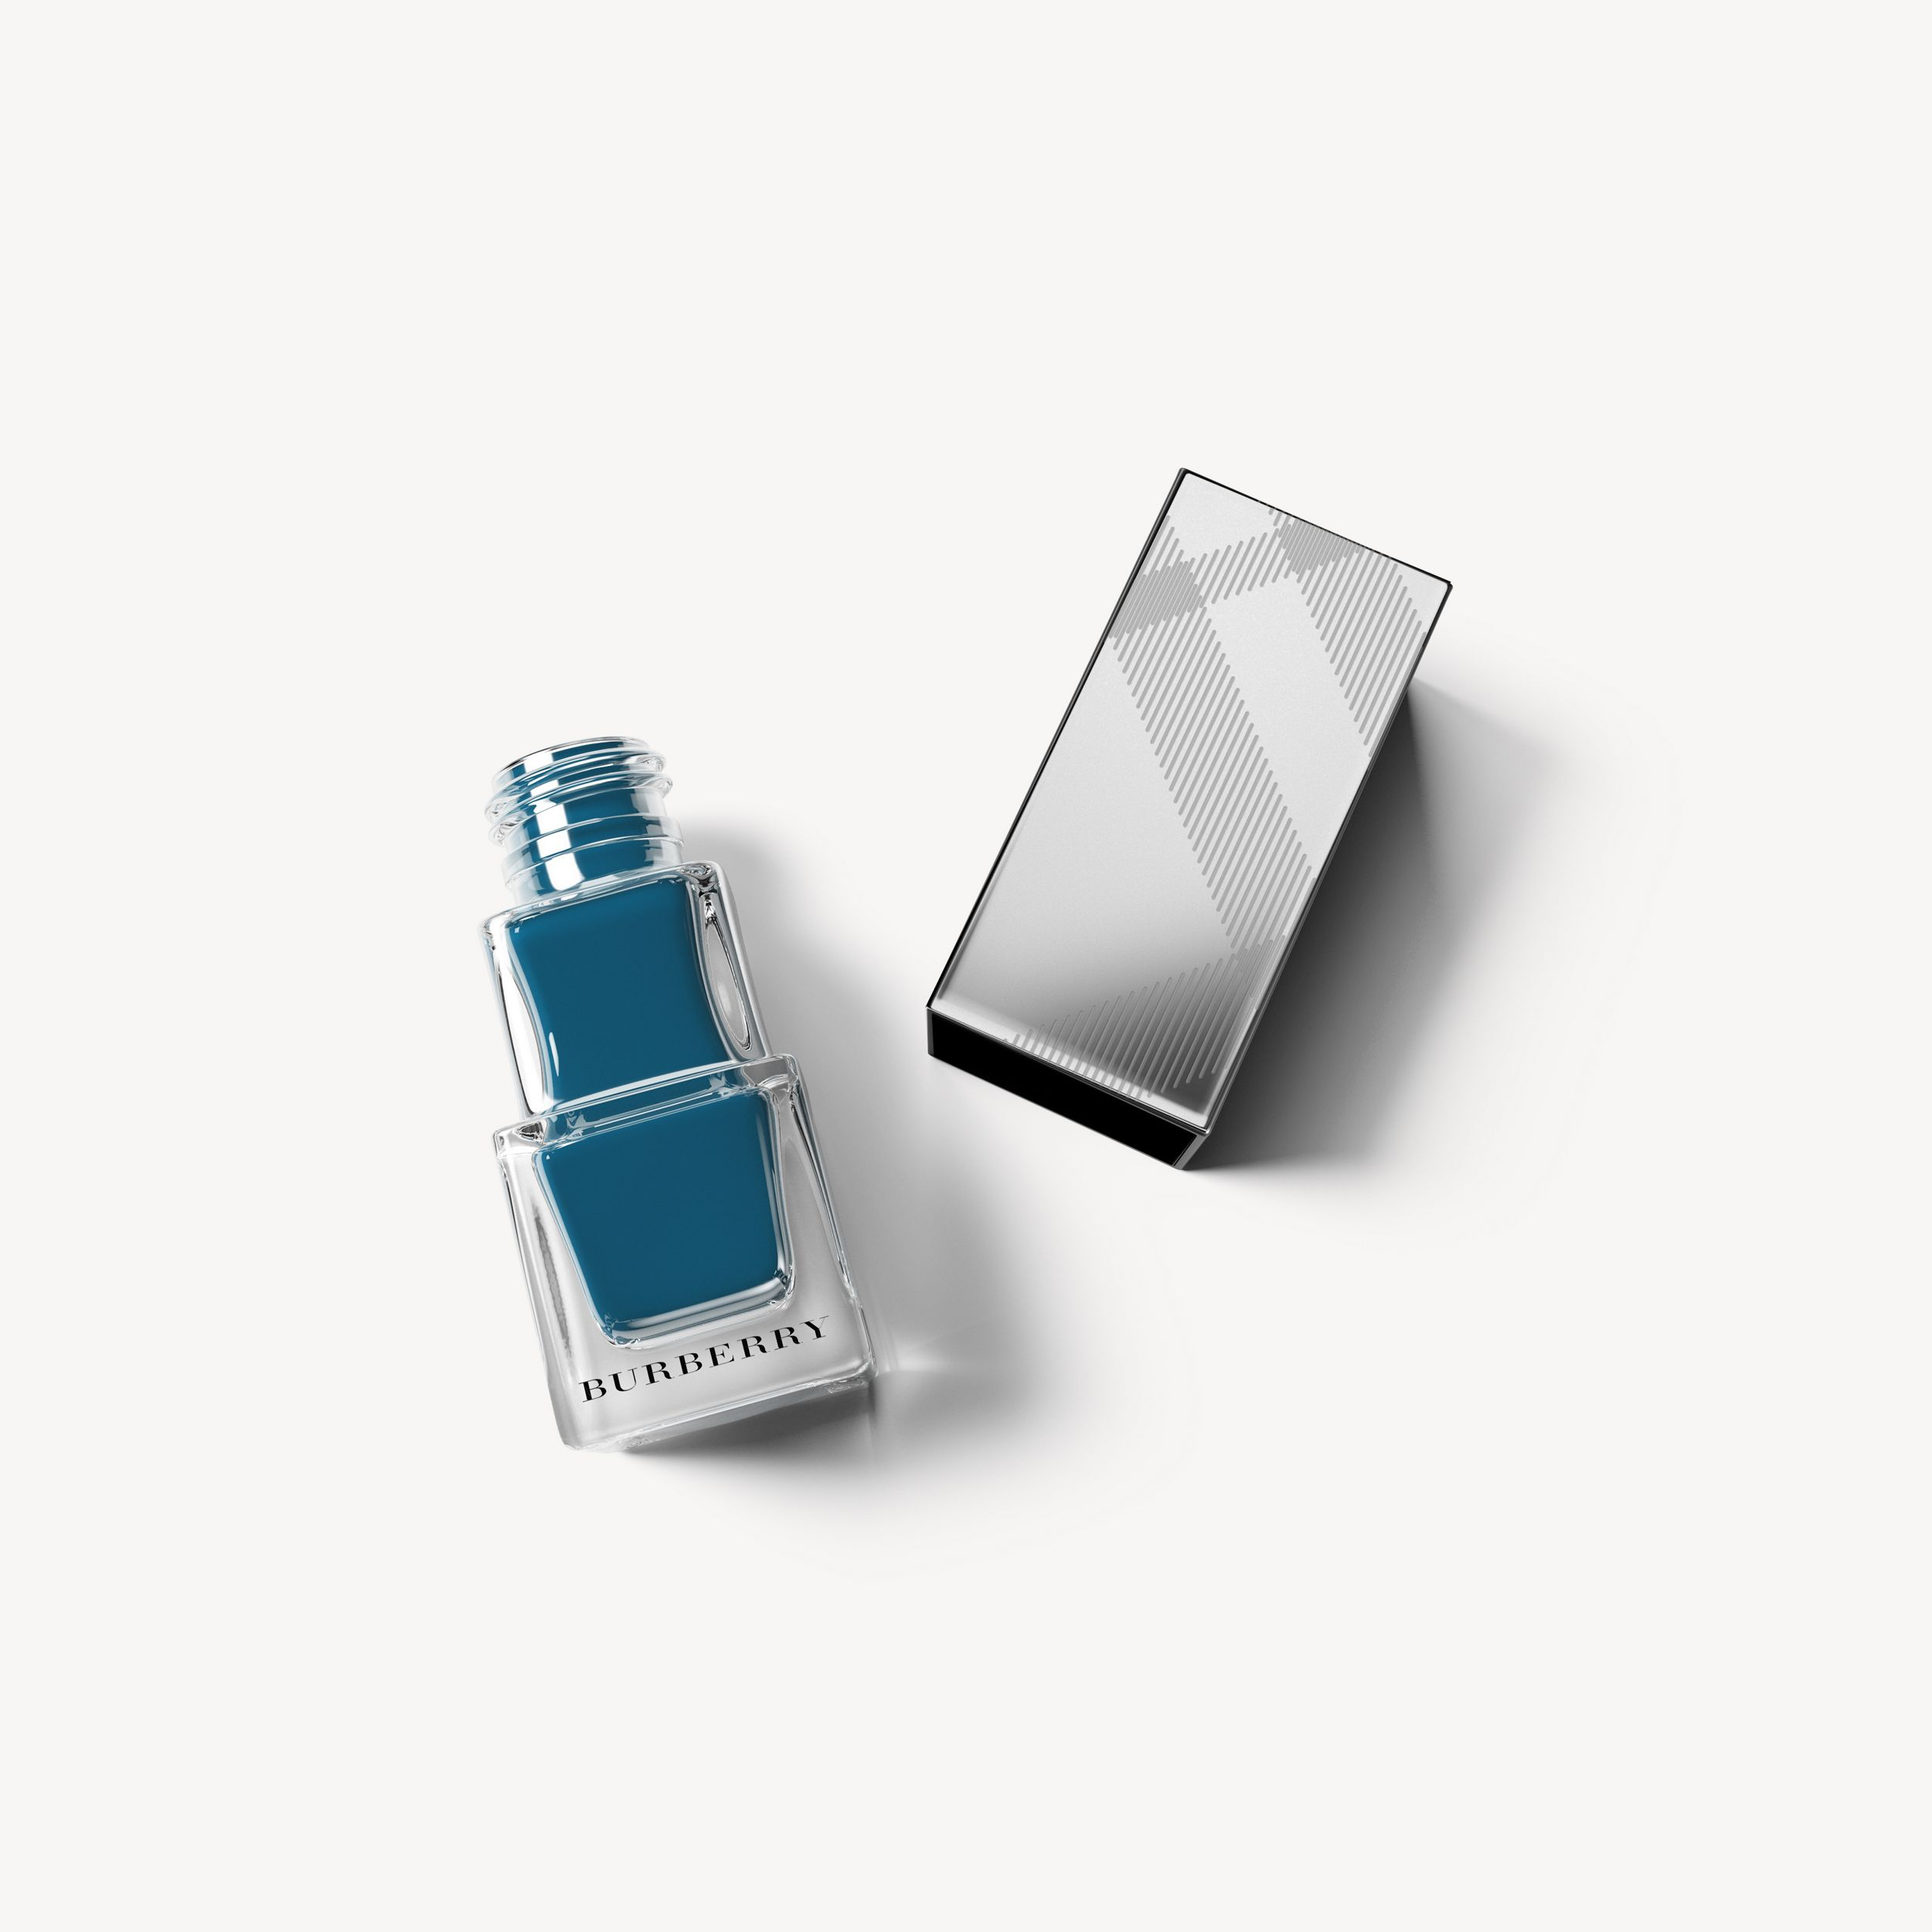 Nail Polish - Teal Blue No.427 - Women | Burberry Australia - 1